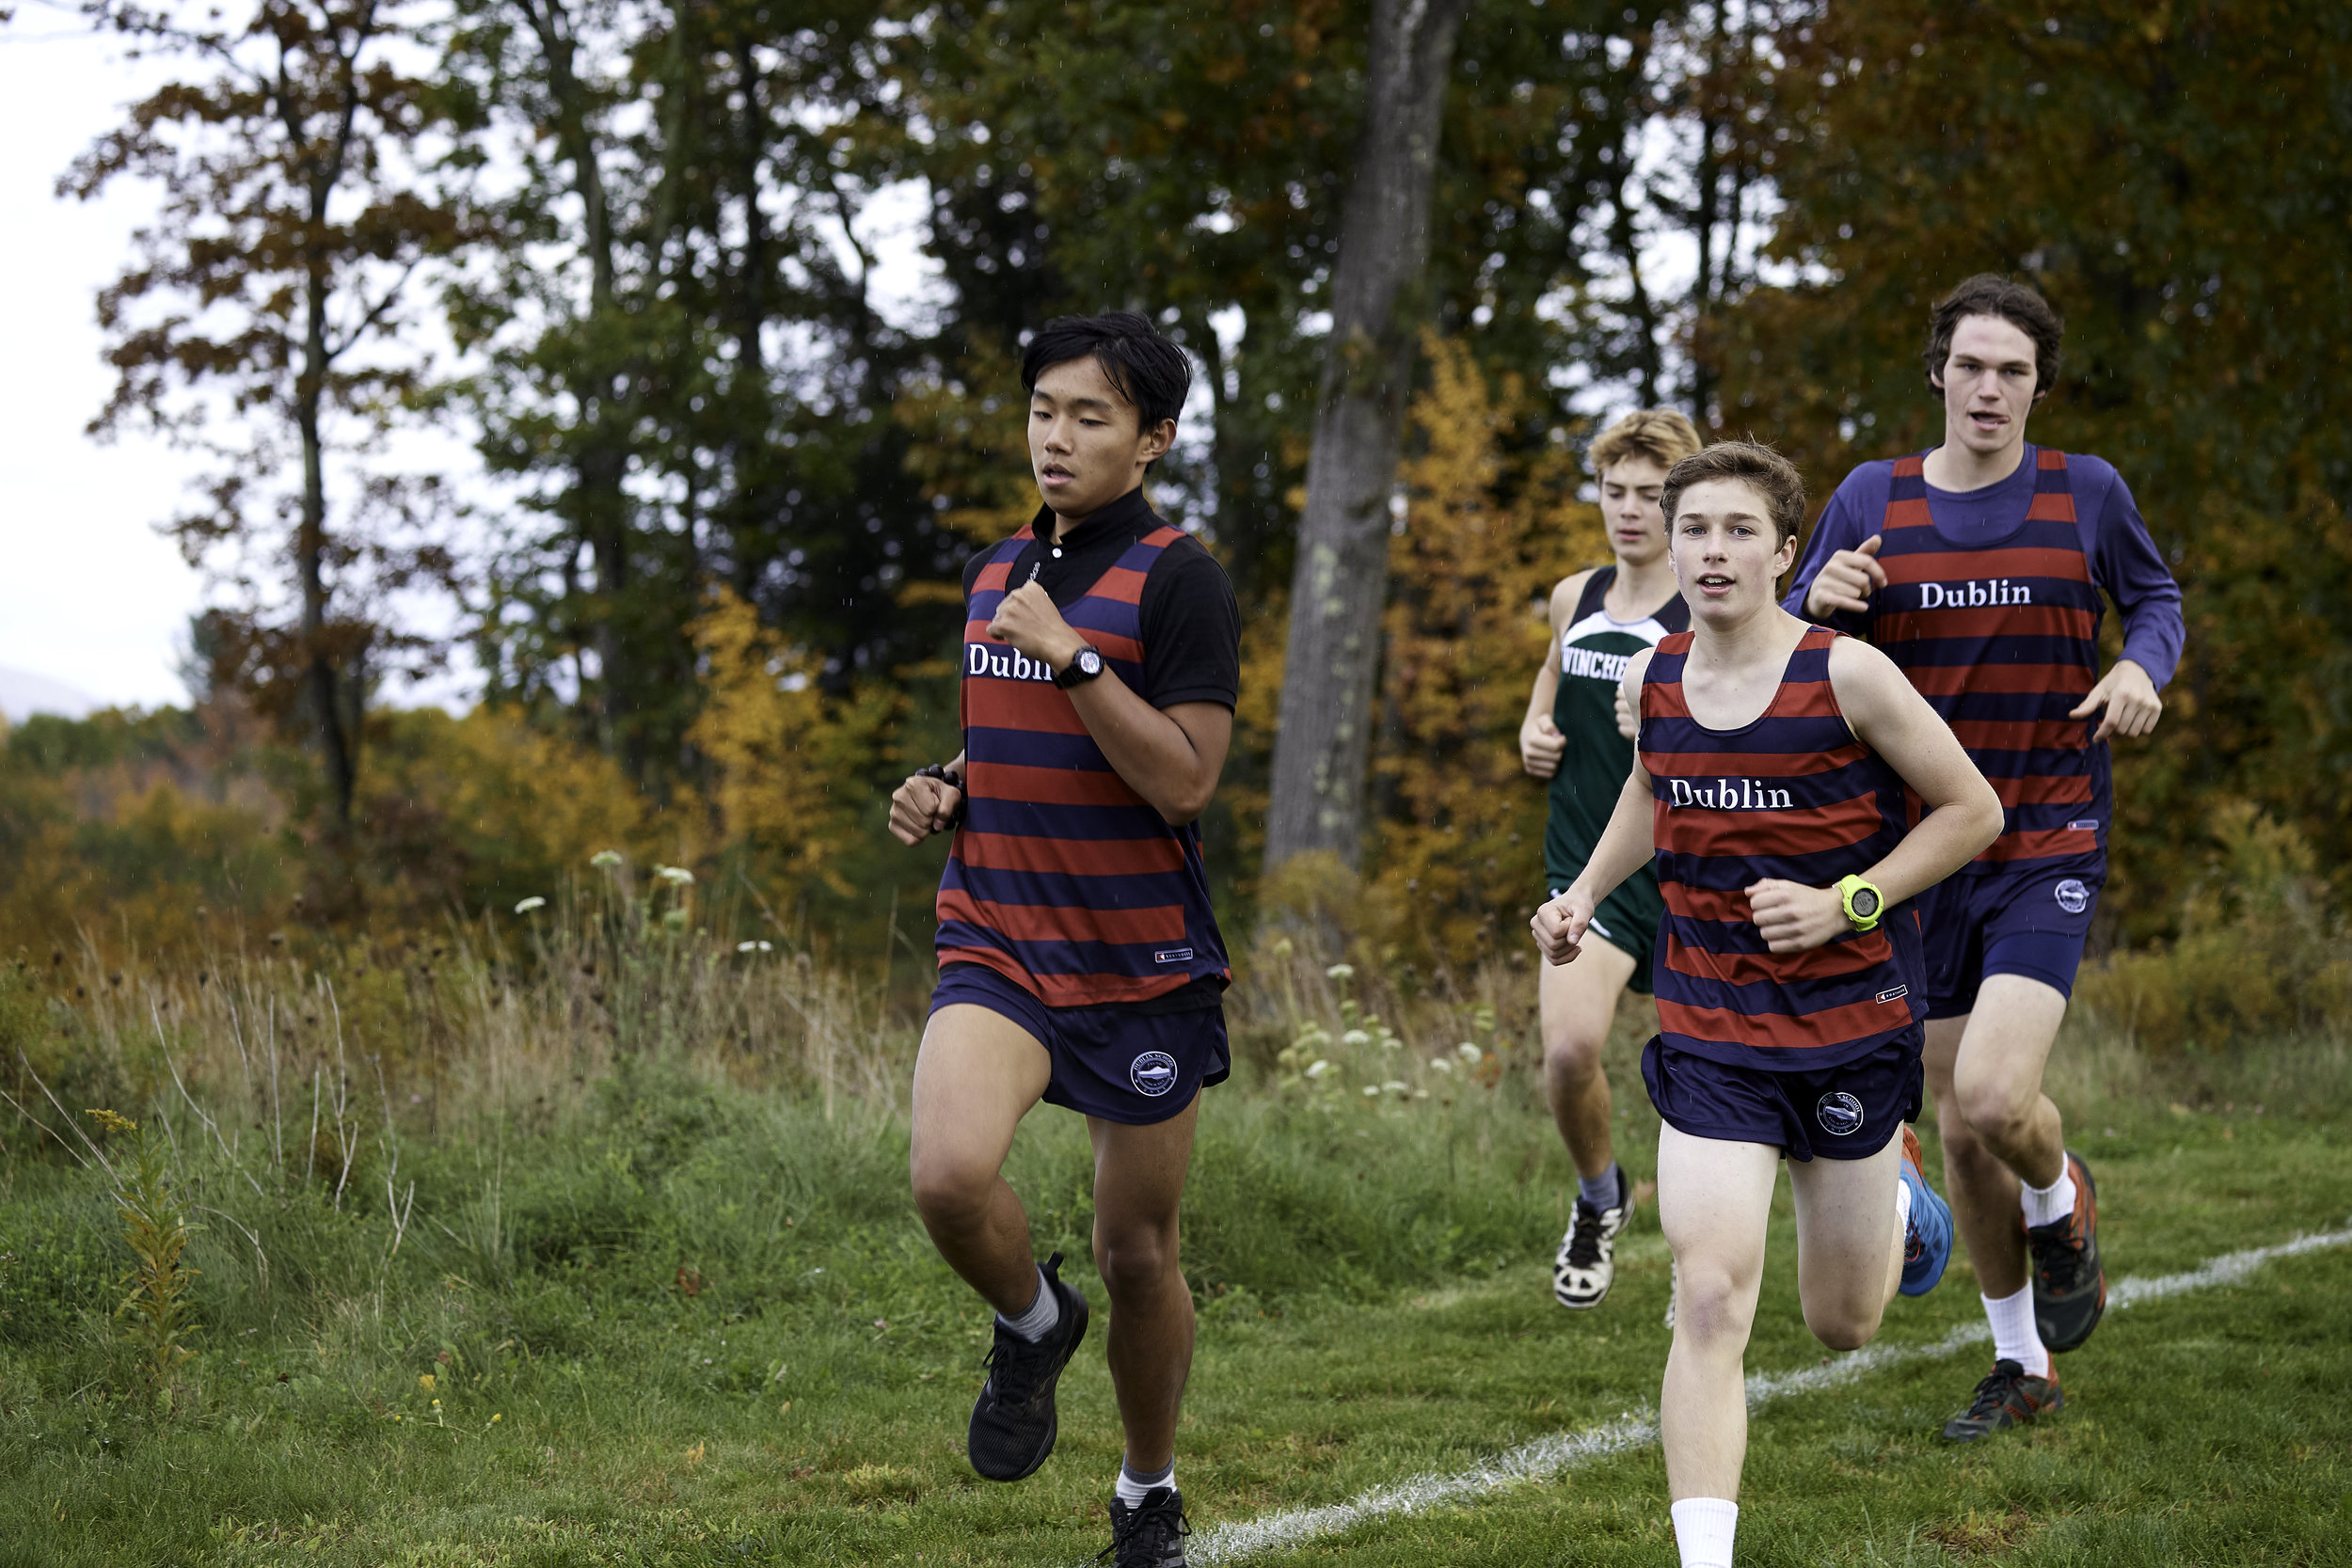 Dublion Invitational - October 12, 2018 - 136461.jpg